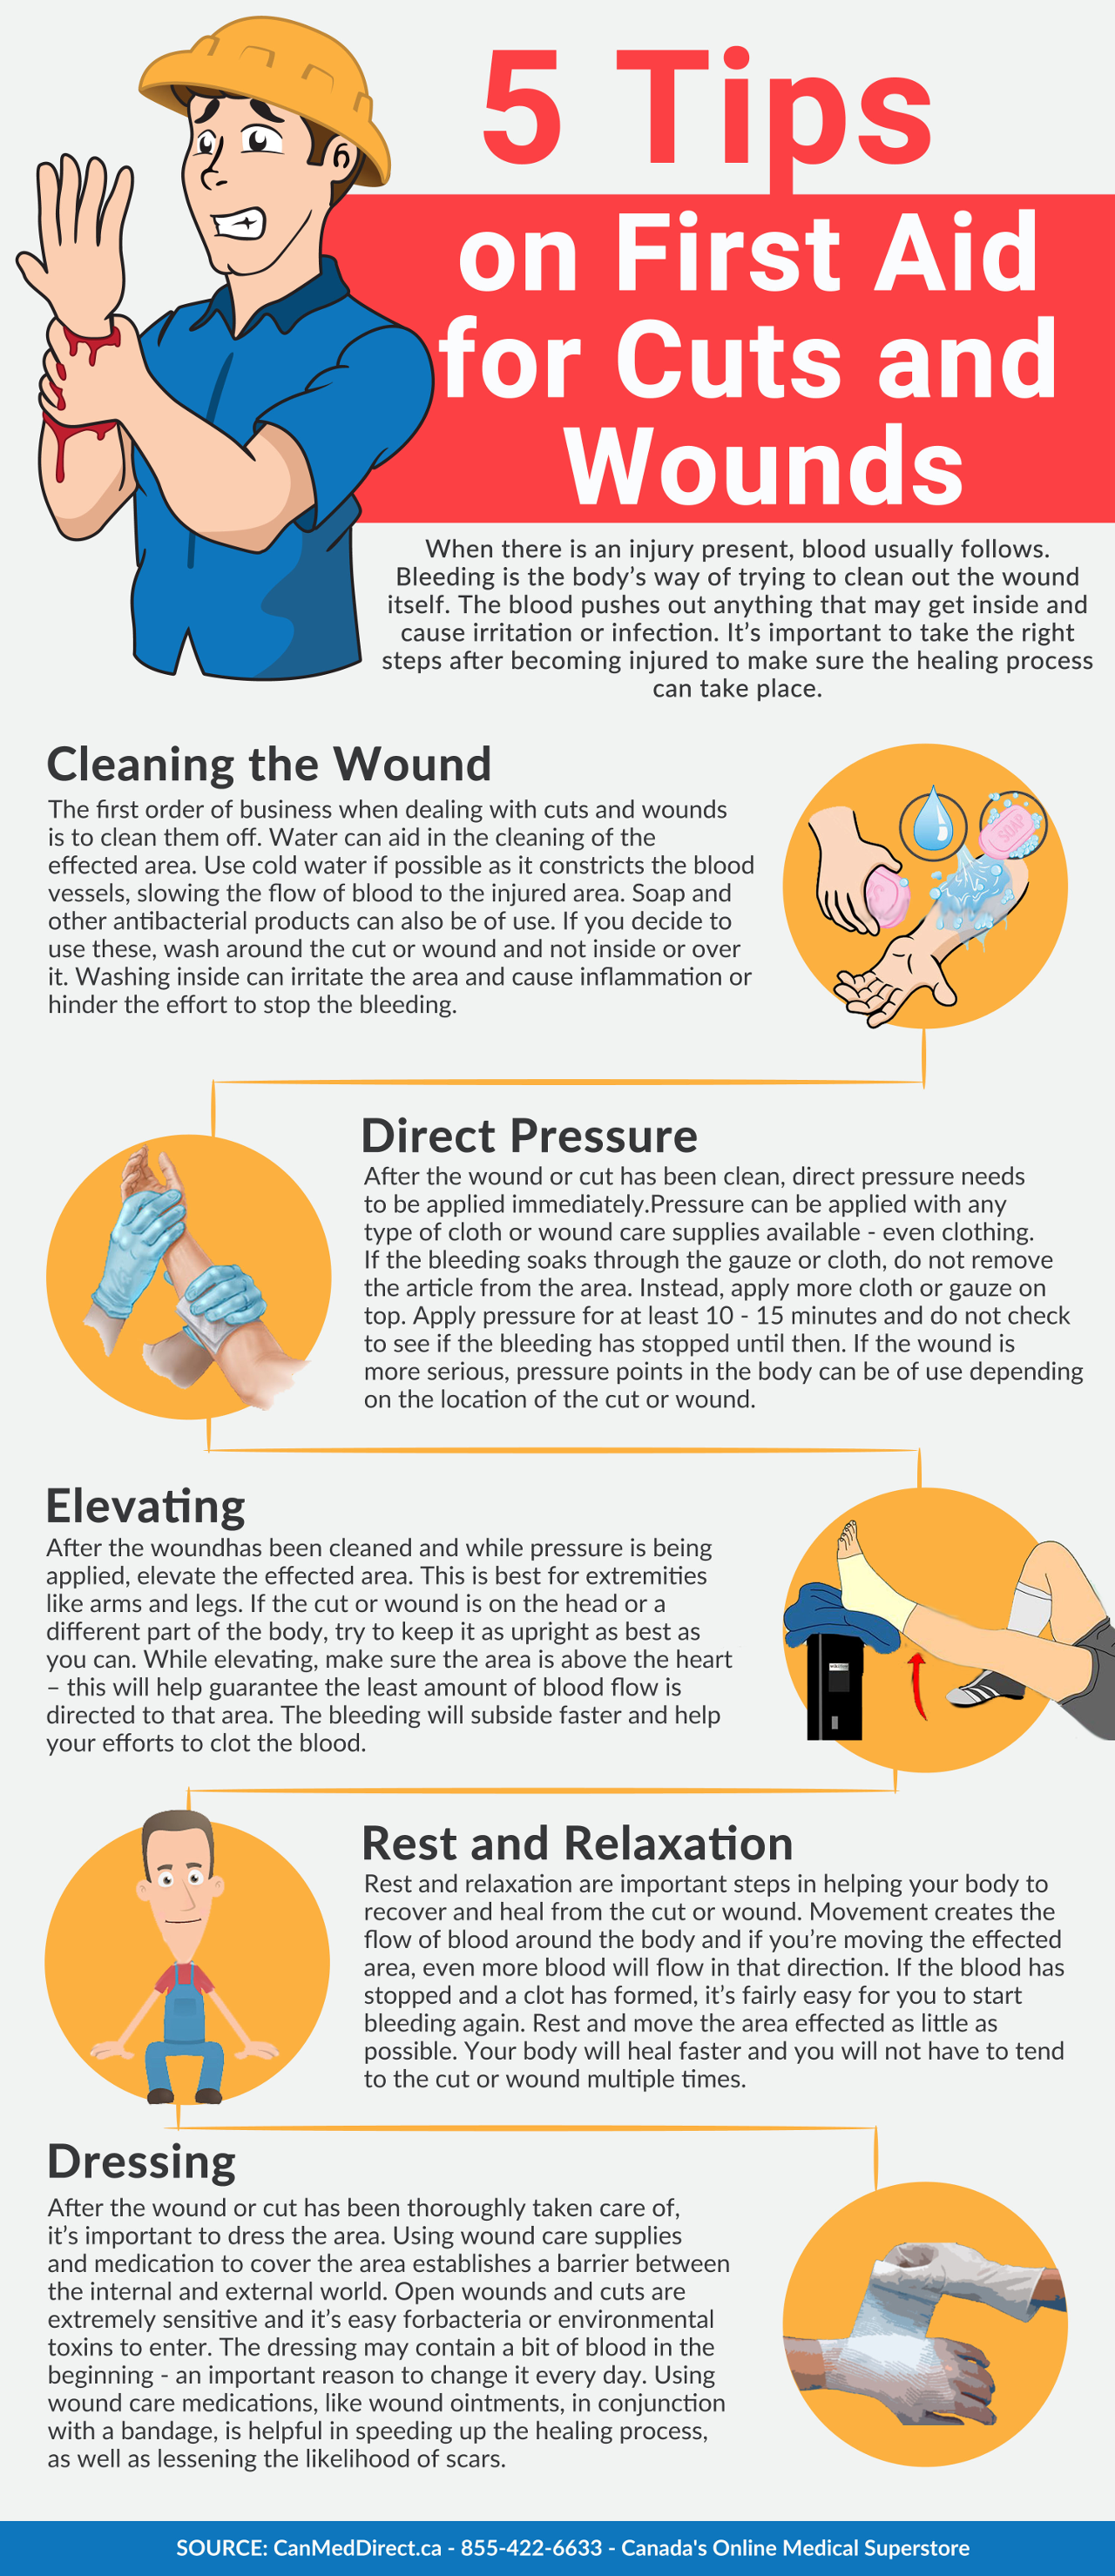 How To Use Sterile Gauze To Stop Bleeding And Prevent